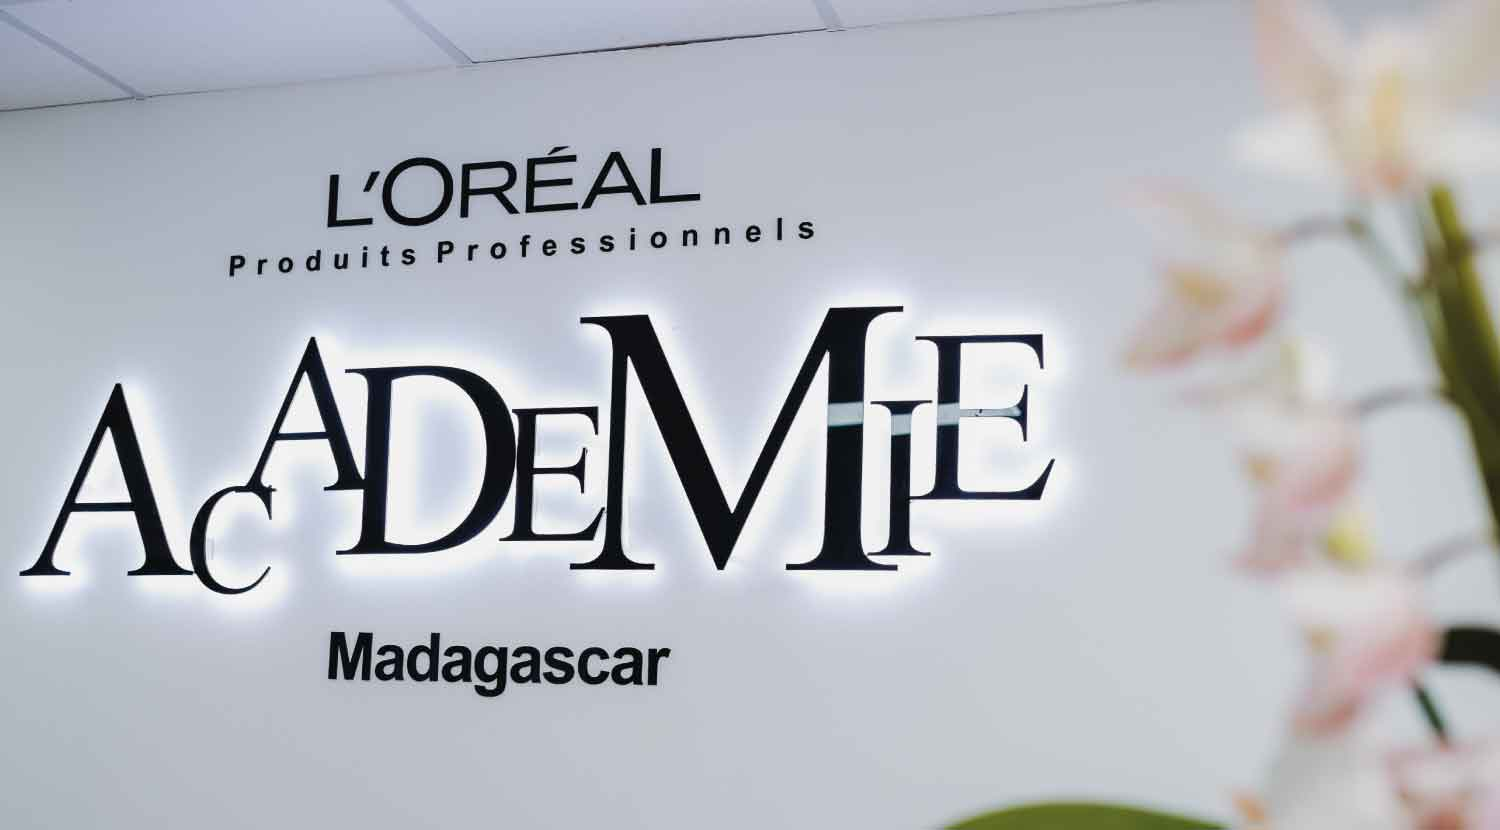 L'Oréal Professionnel Academy, training center